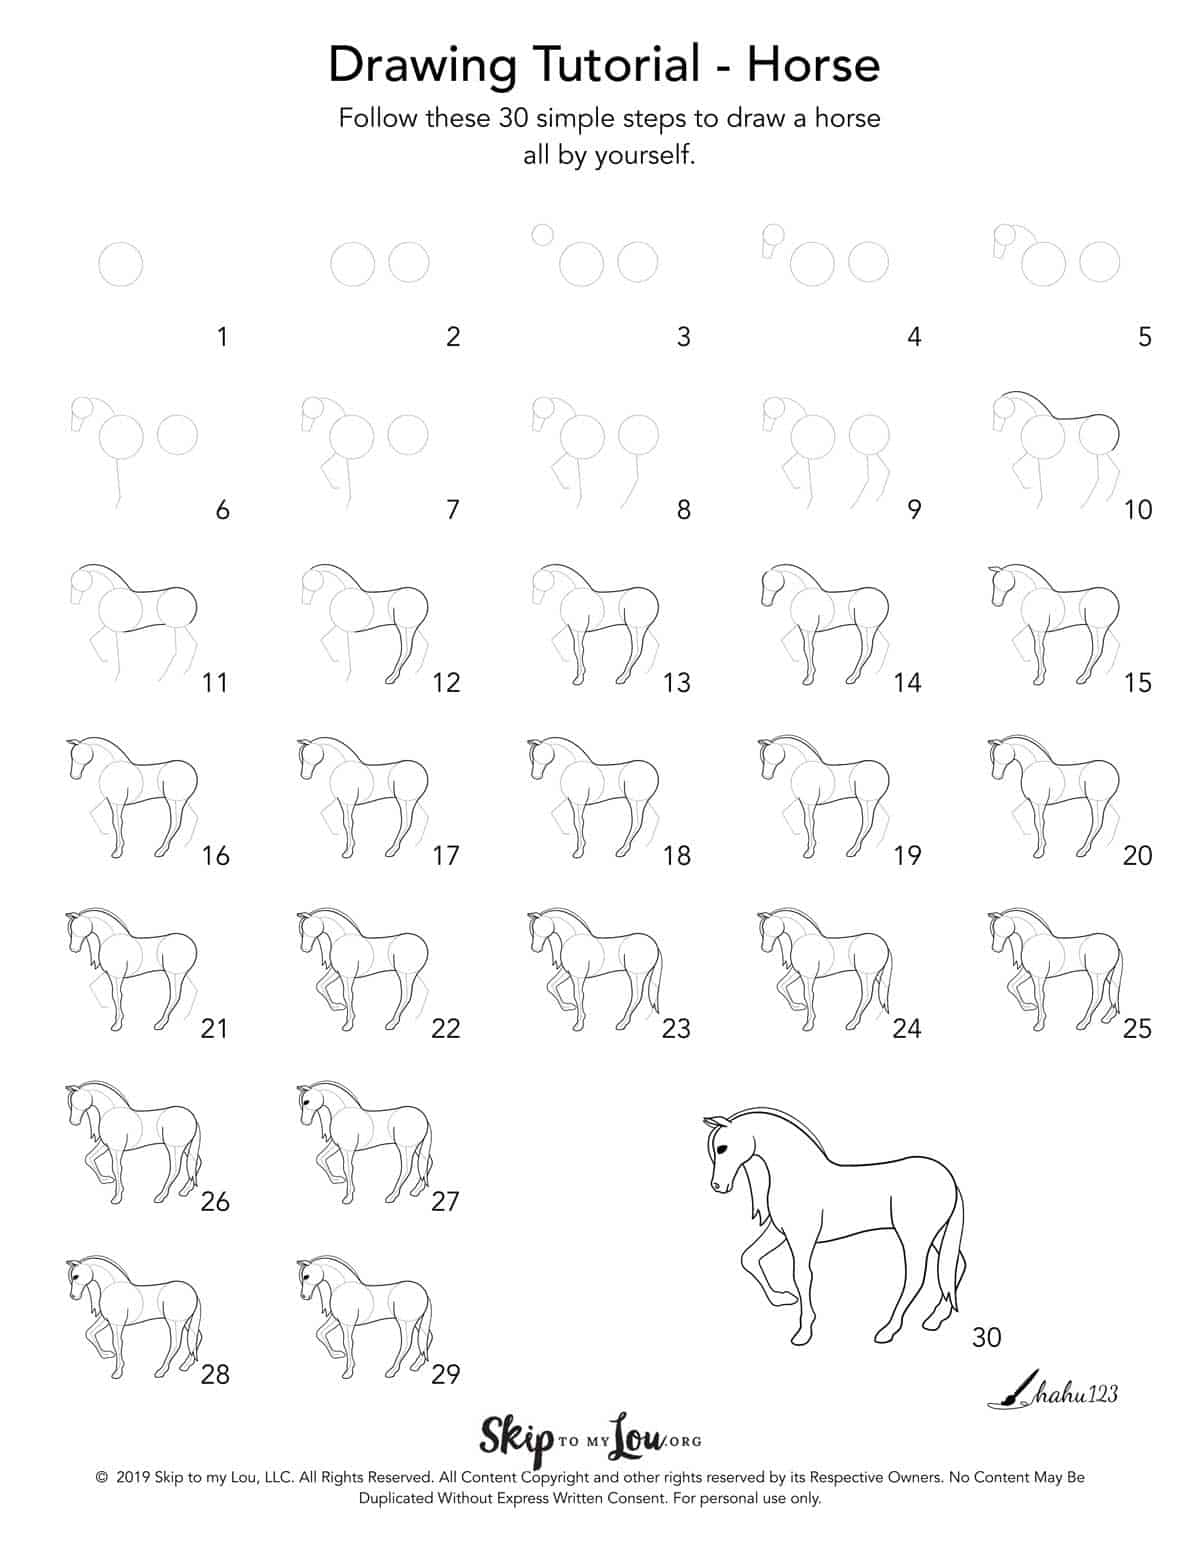 How To Draw A Horse Step By Step With Printable Guide Skip To My Lou